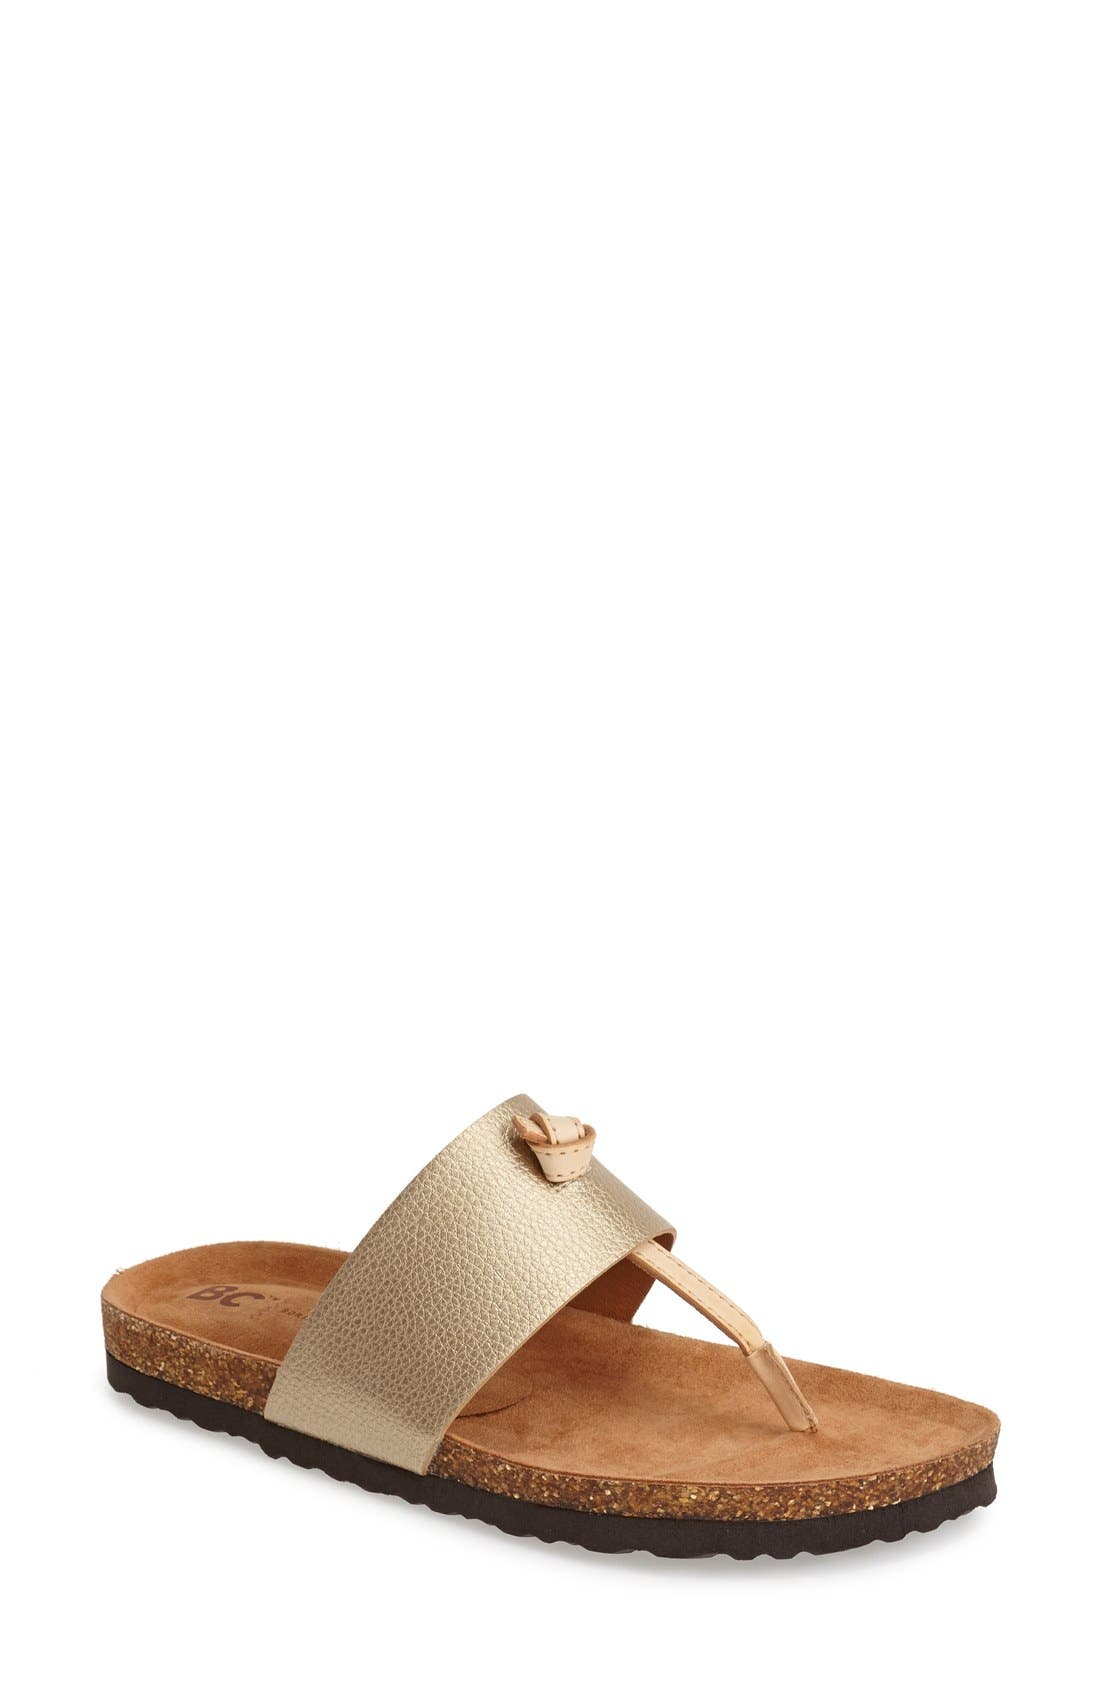 Main Image - BC Footwear 'Lynx' Faux Leather Thong Sandal (Women)